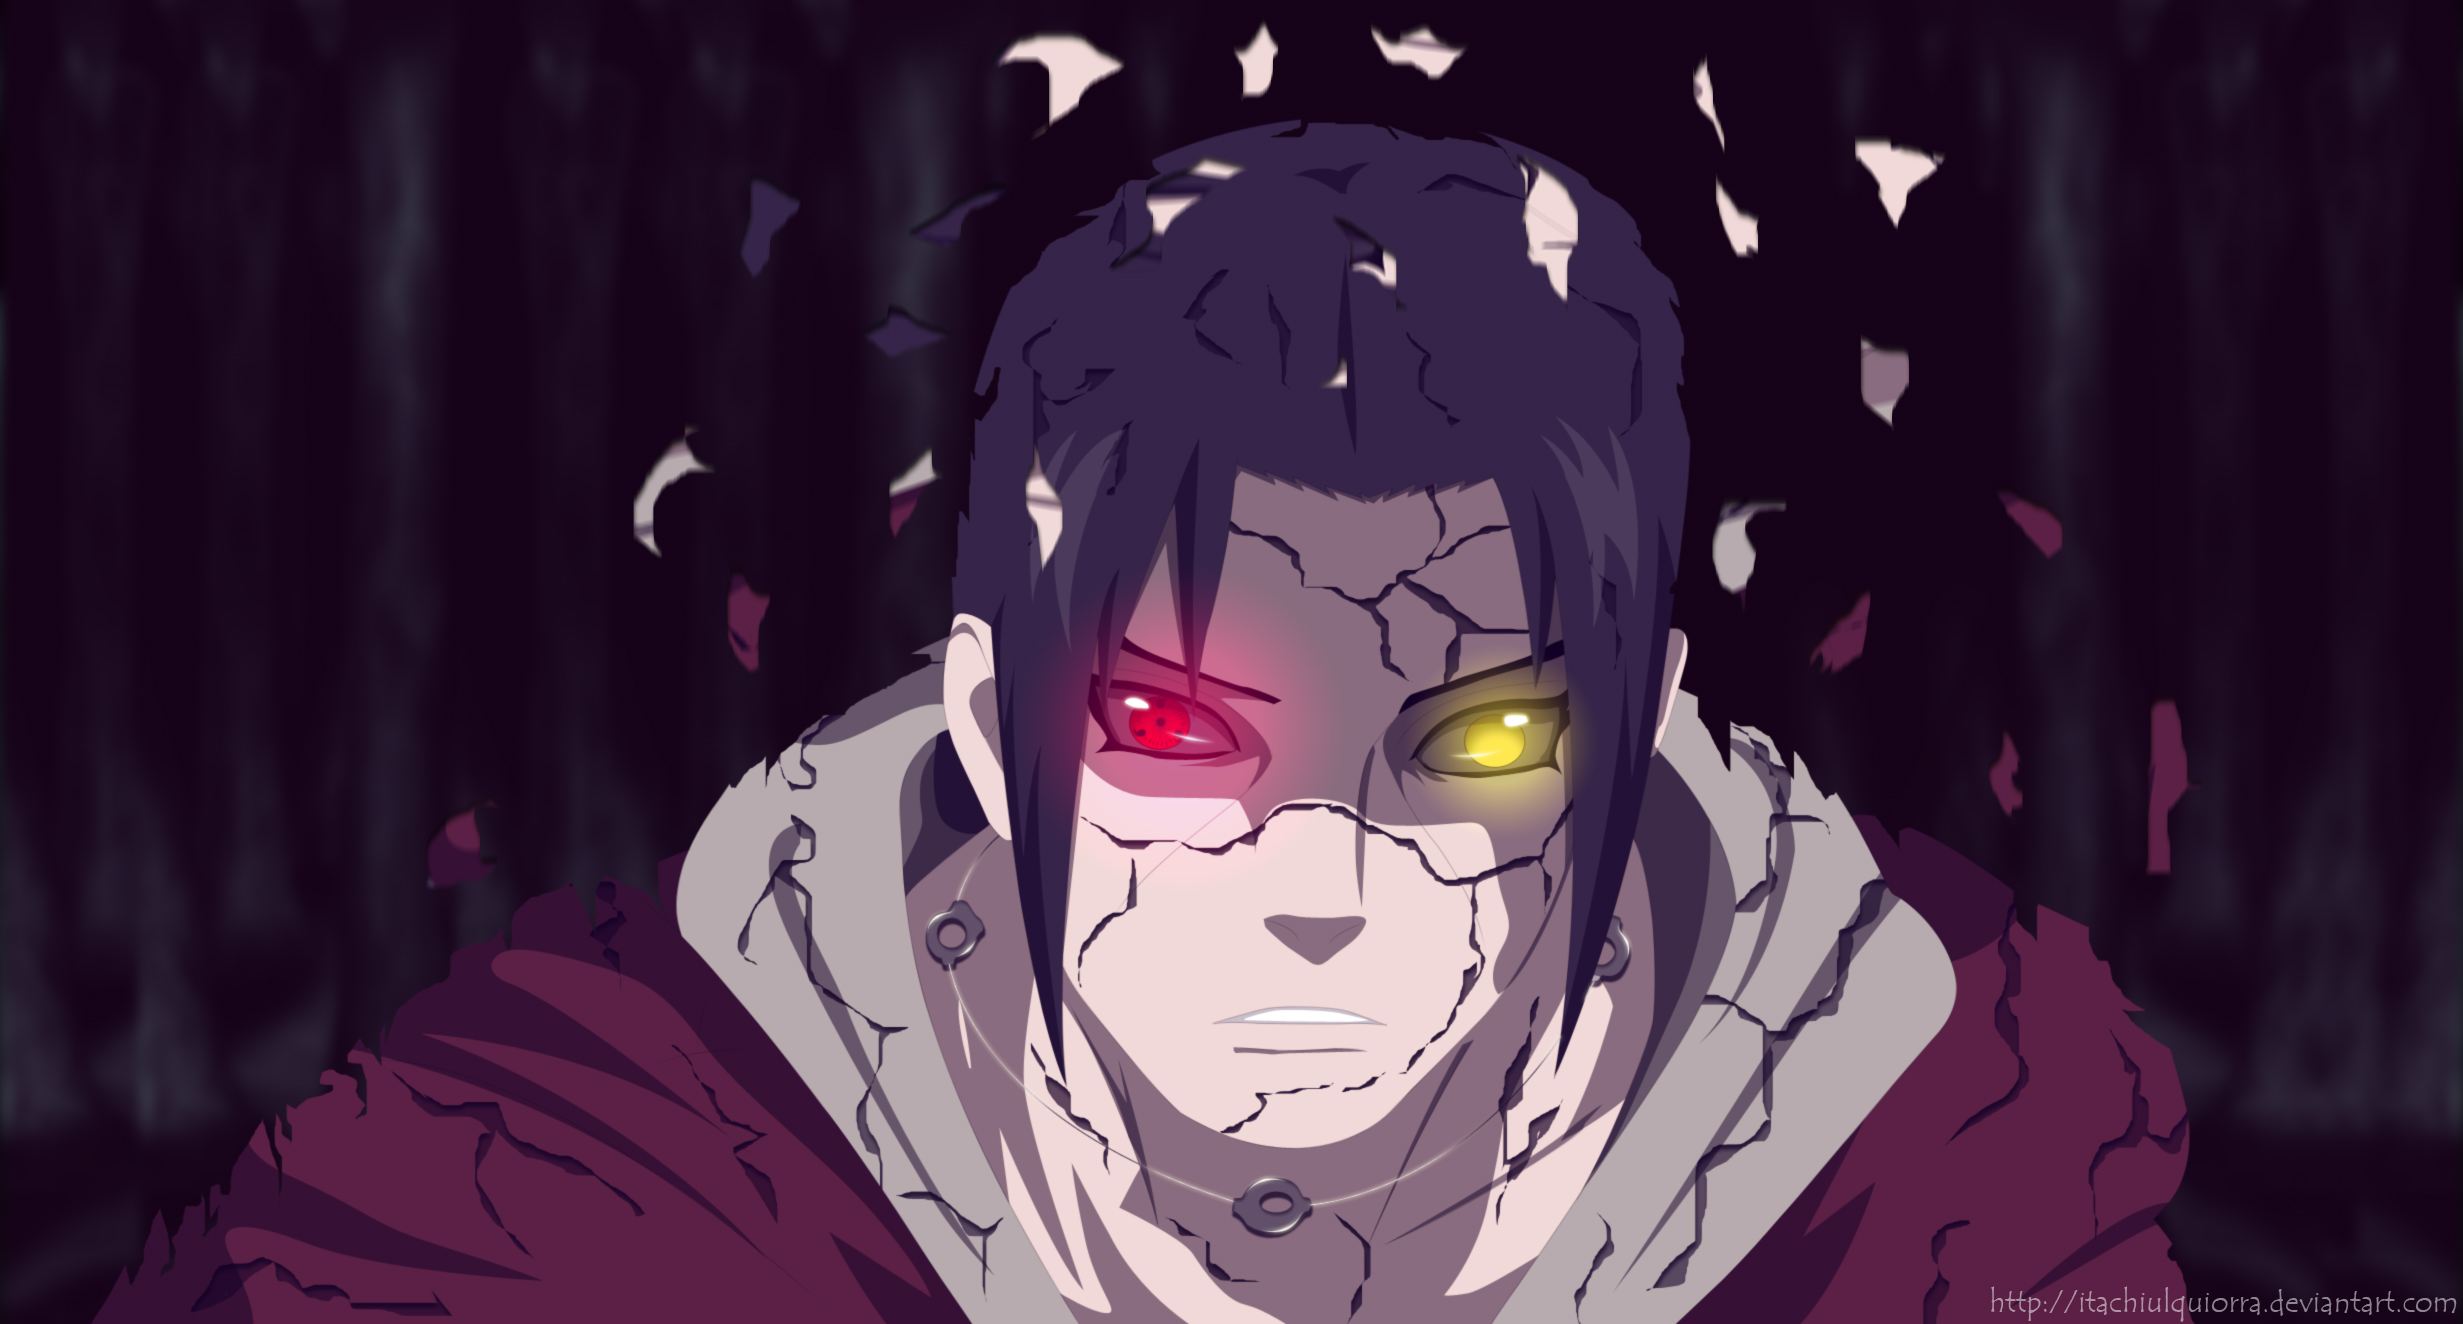 Itachi Loves Sasuke Edo Madara Uchiha Disappears